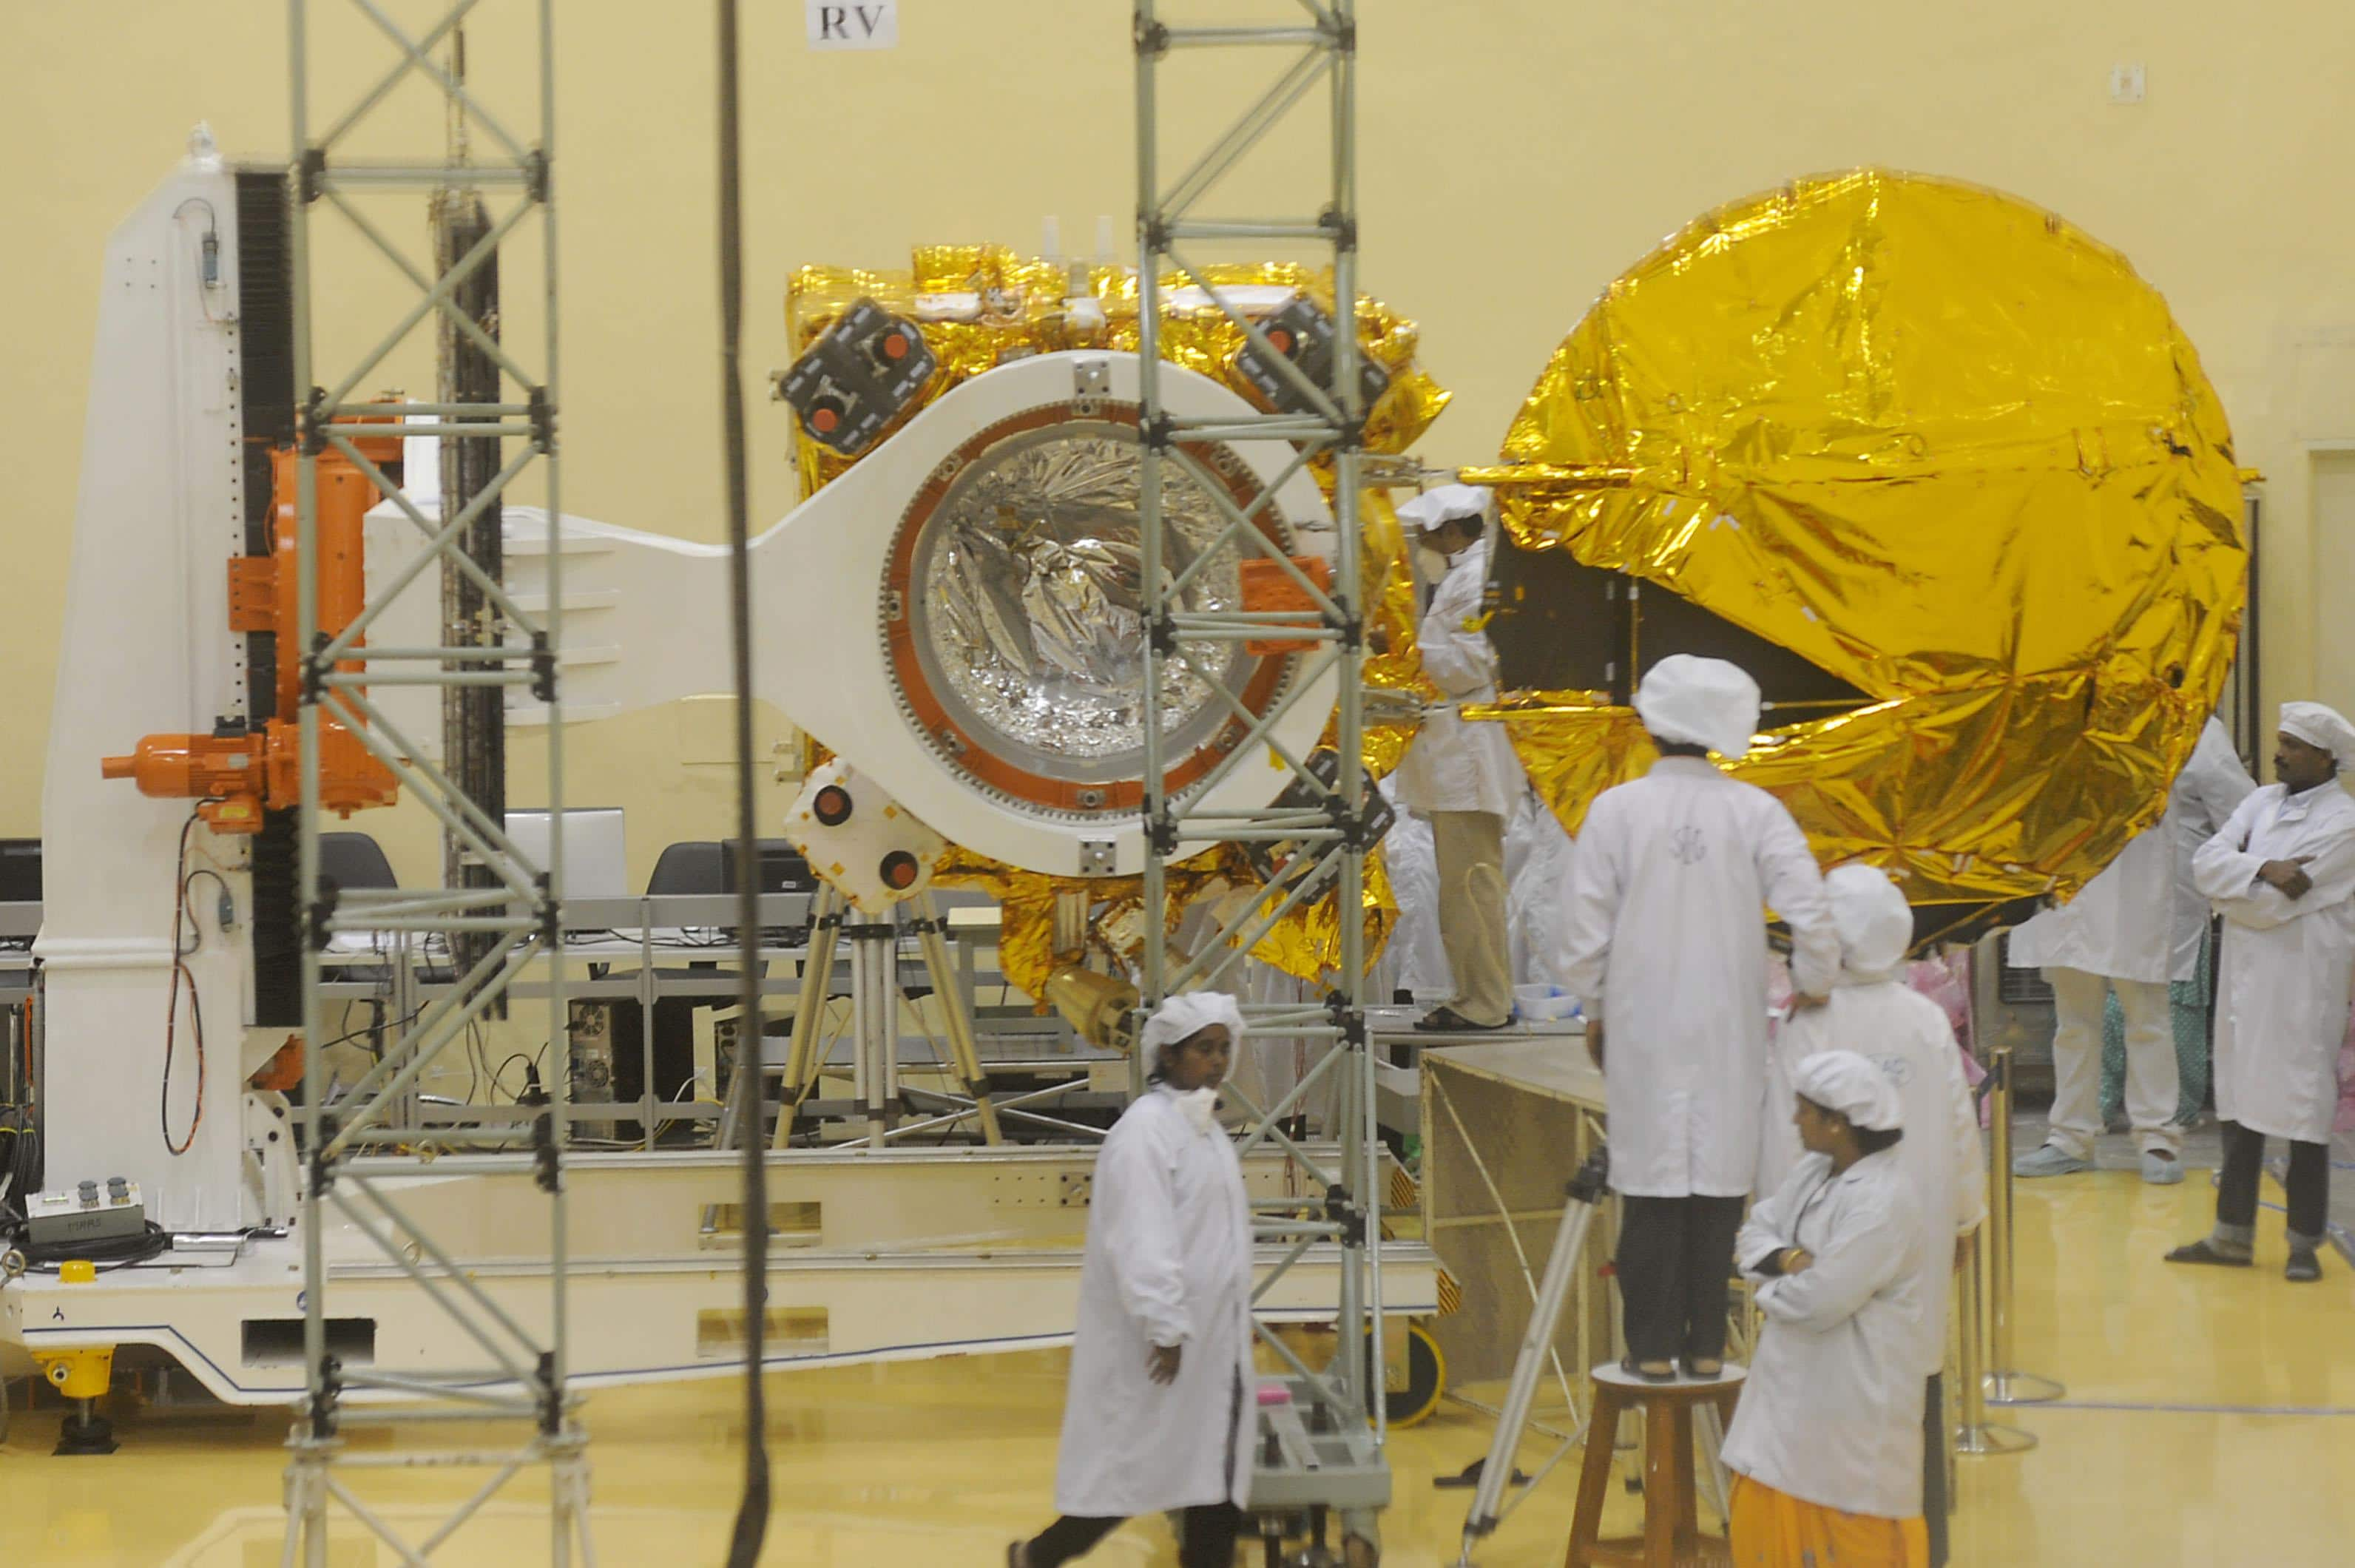 Indian spacecraft enters Martian sphere of influence